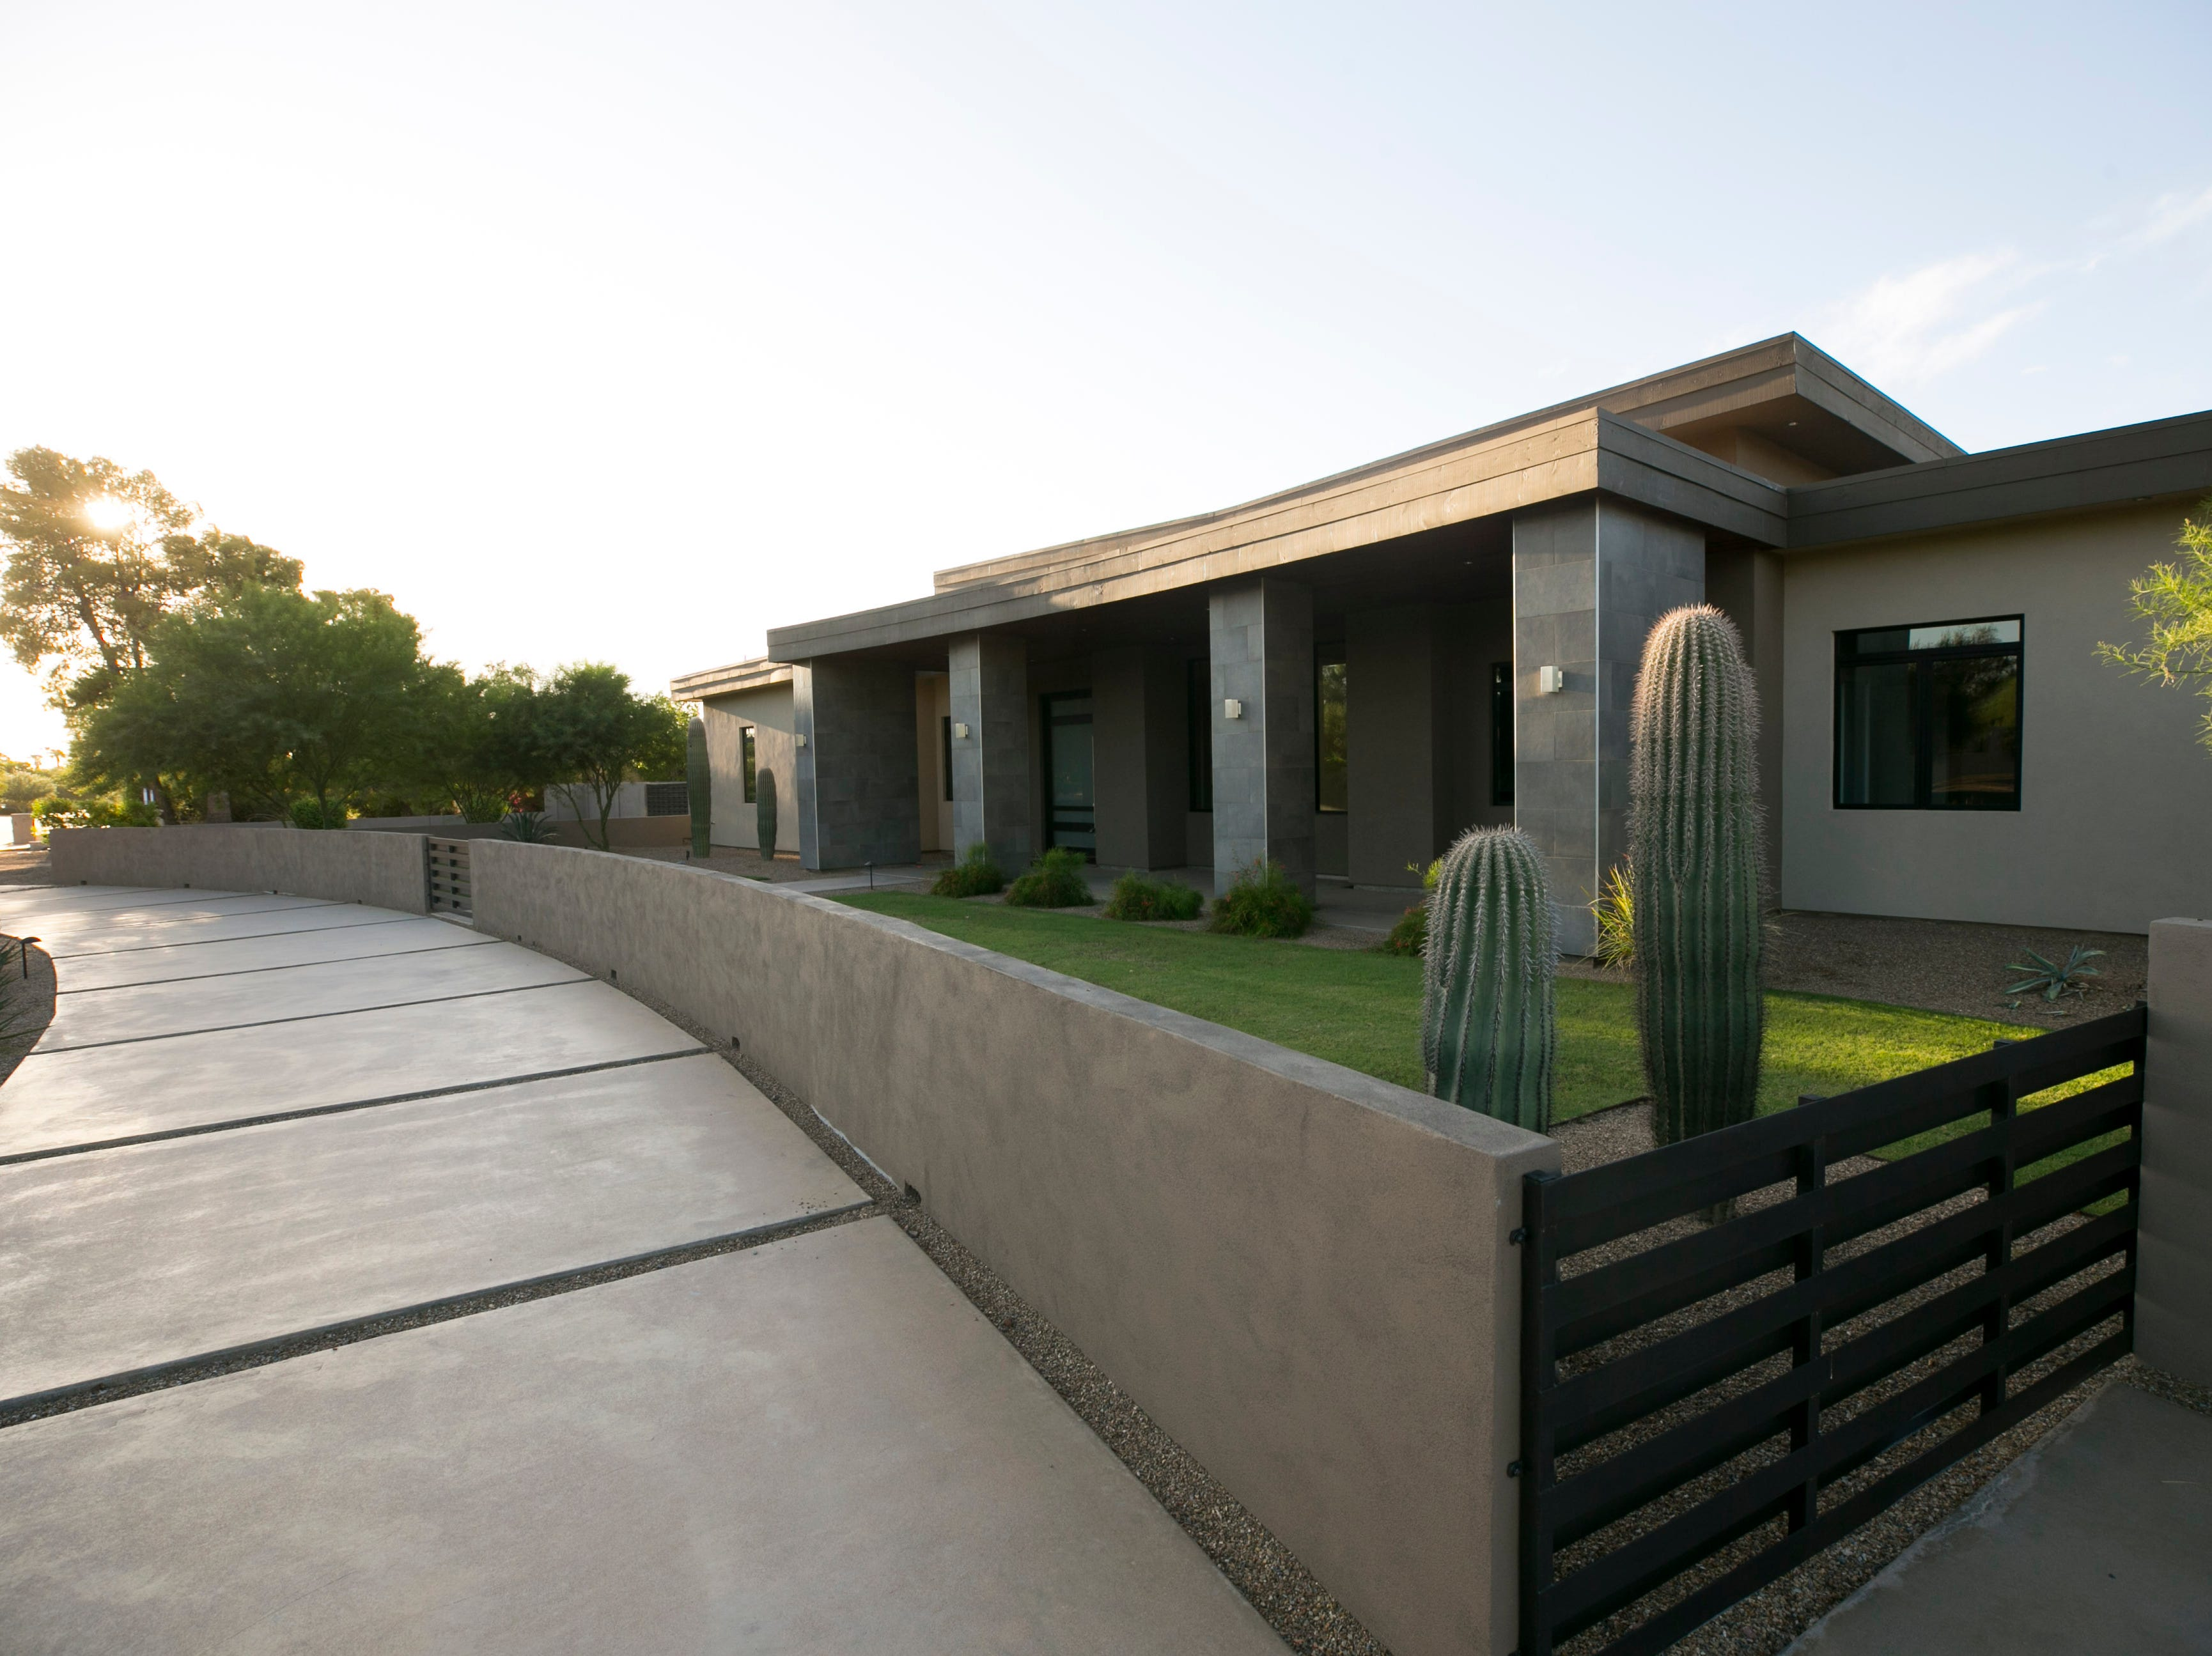 One of the Arizona Coyotes newest hockey players, Alex Galchenyuk, bought a house in the heart of Paradise Valley that has 7,000 square feet, 5 bedrooms, 6½ bathrooms. a master suite complete witha den and a backyard pool with a swim-up bar.